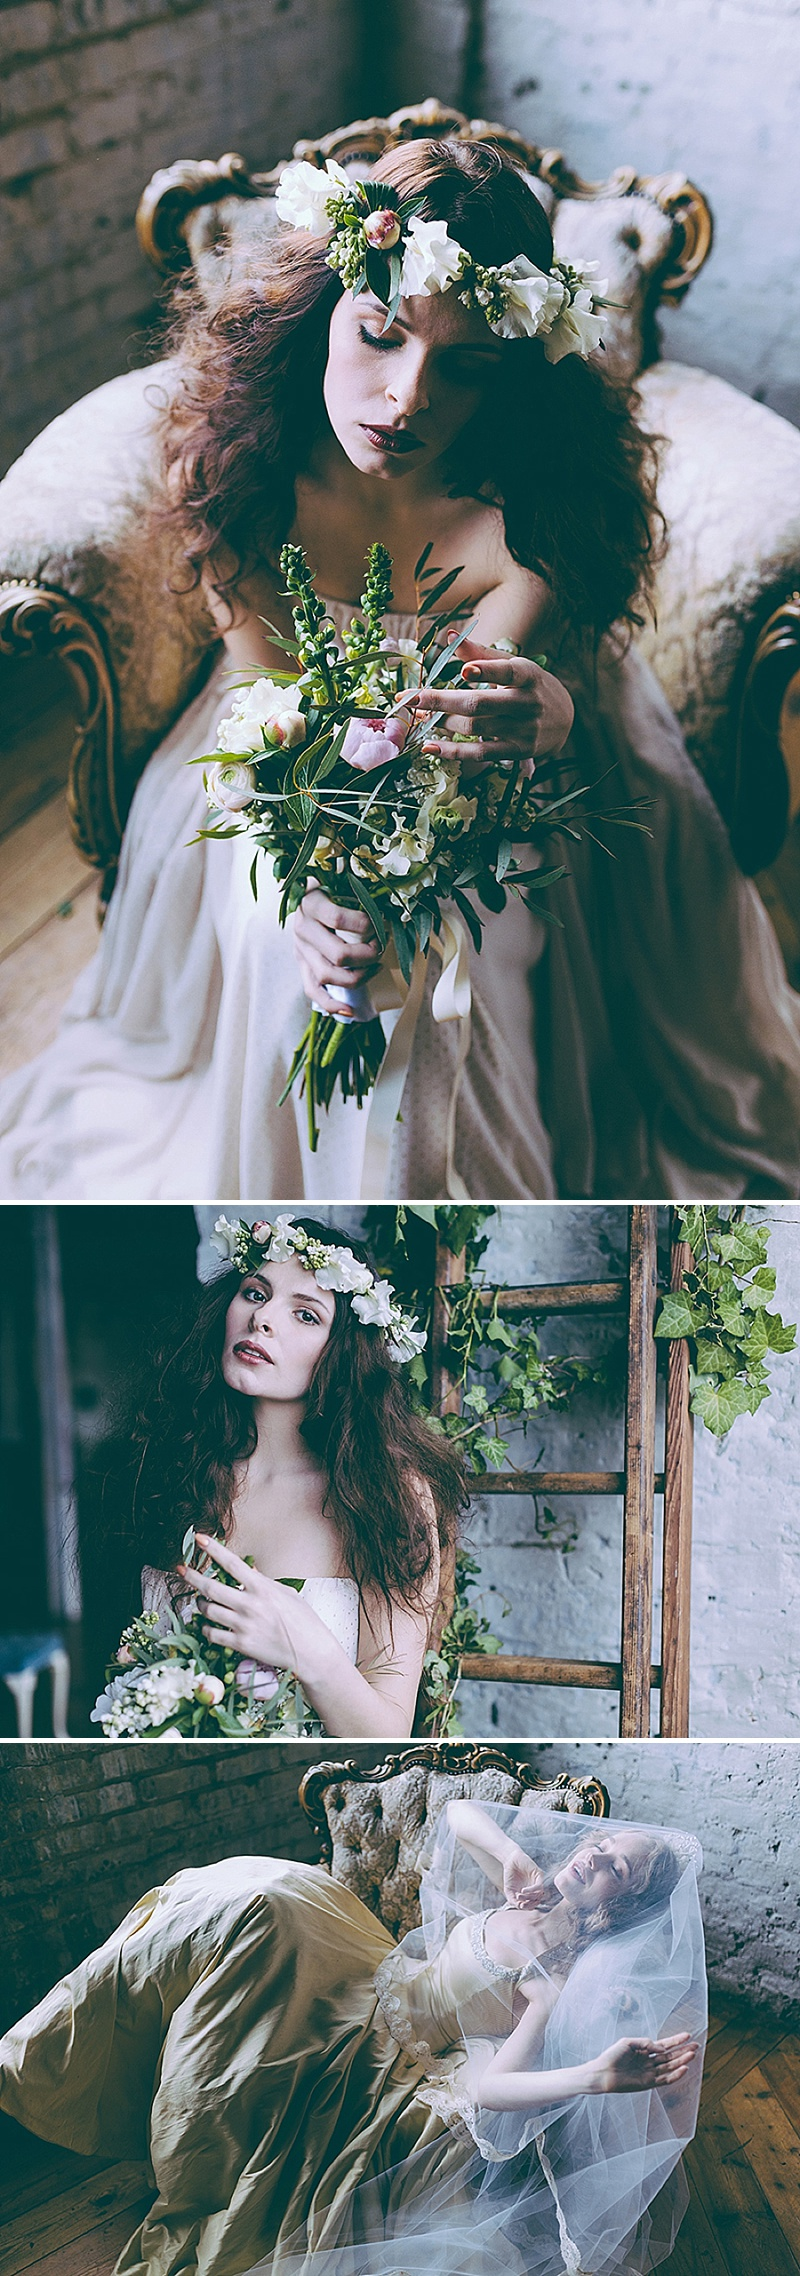 Rustic And Romantic Fairytale Bridal Inspiration Shoot With Gowns From Faith Caton Barber And Accessories From Rosie Weisencrantz With Images By Miss Gen Photography 1 The Sleeping Beauty Bride.